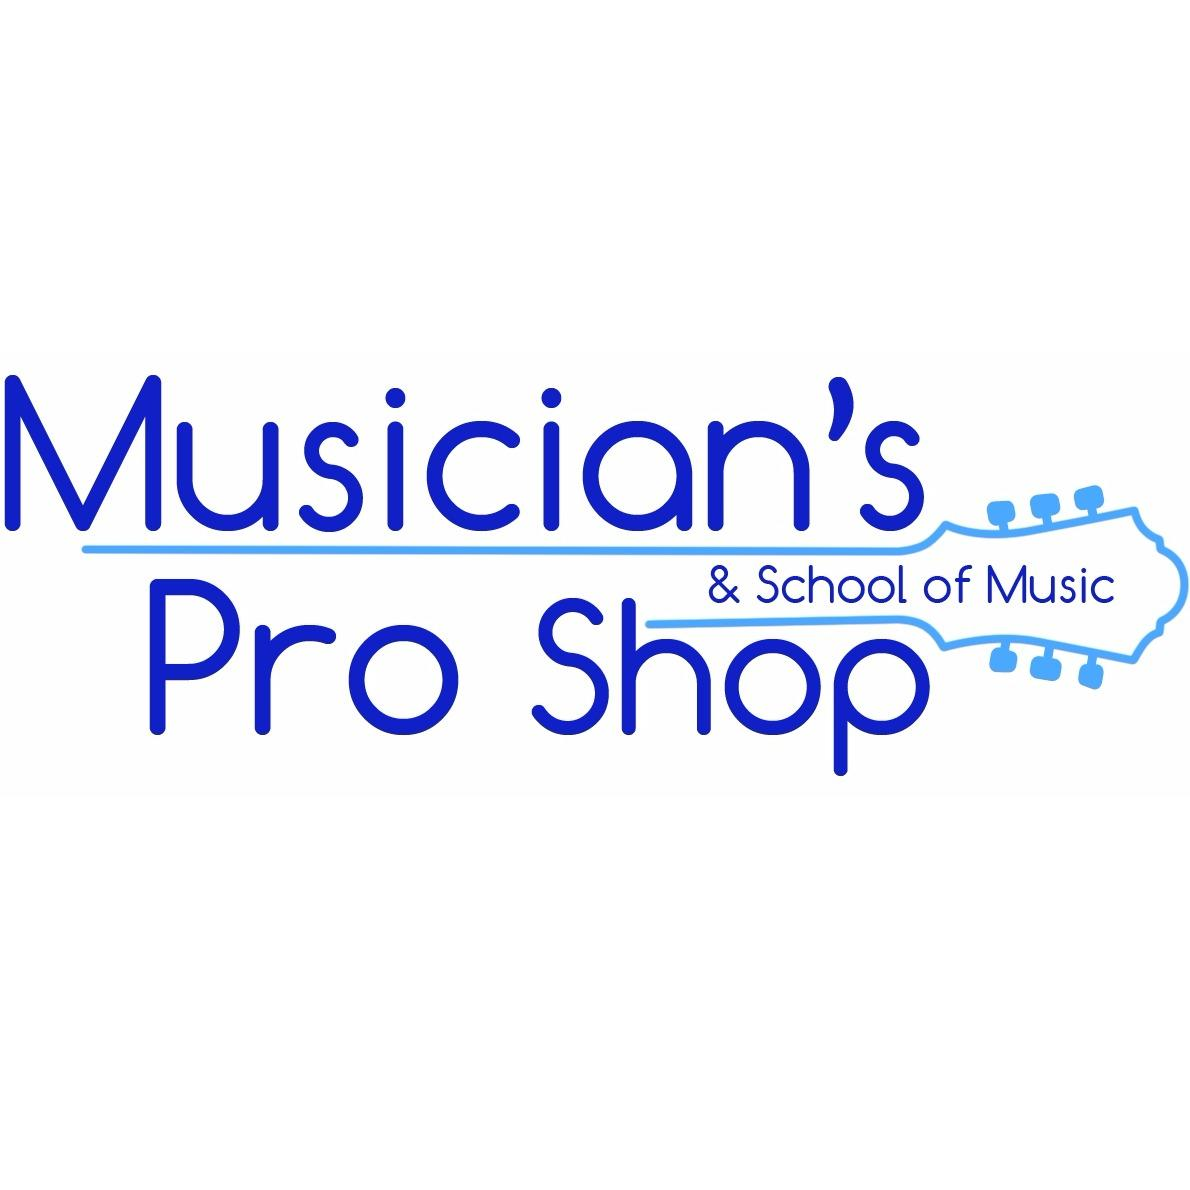 Musicians Pro Shop & School of Music